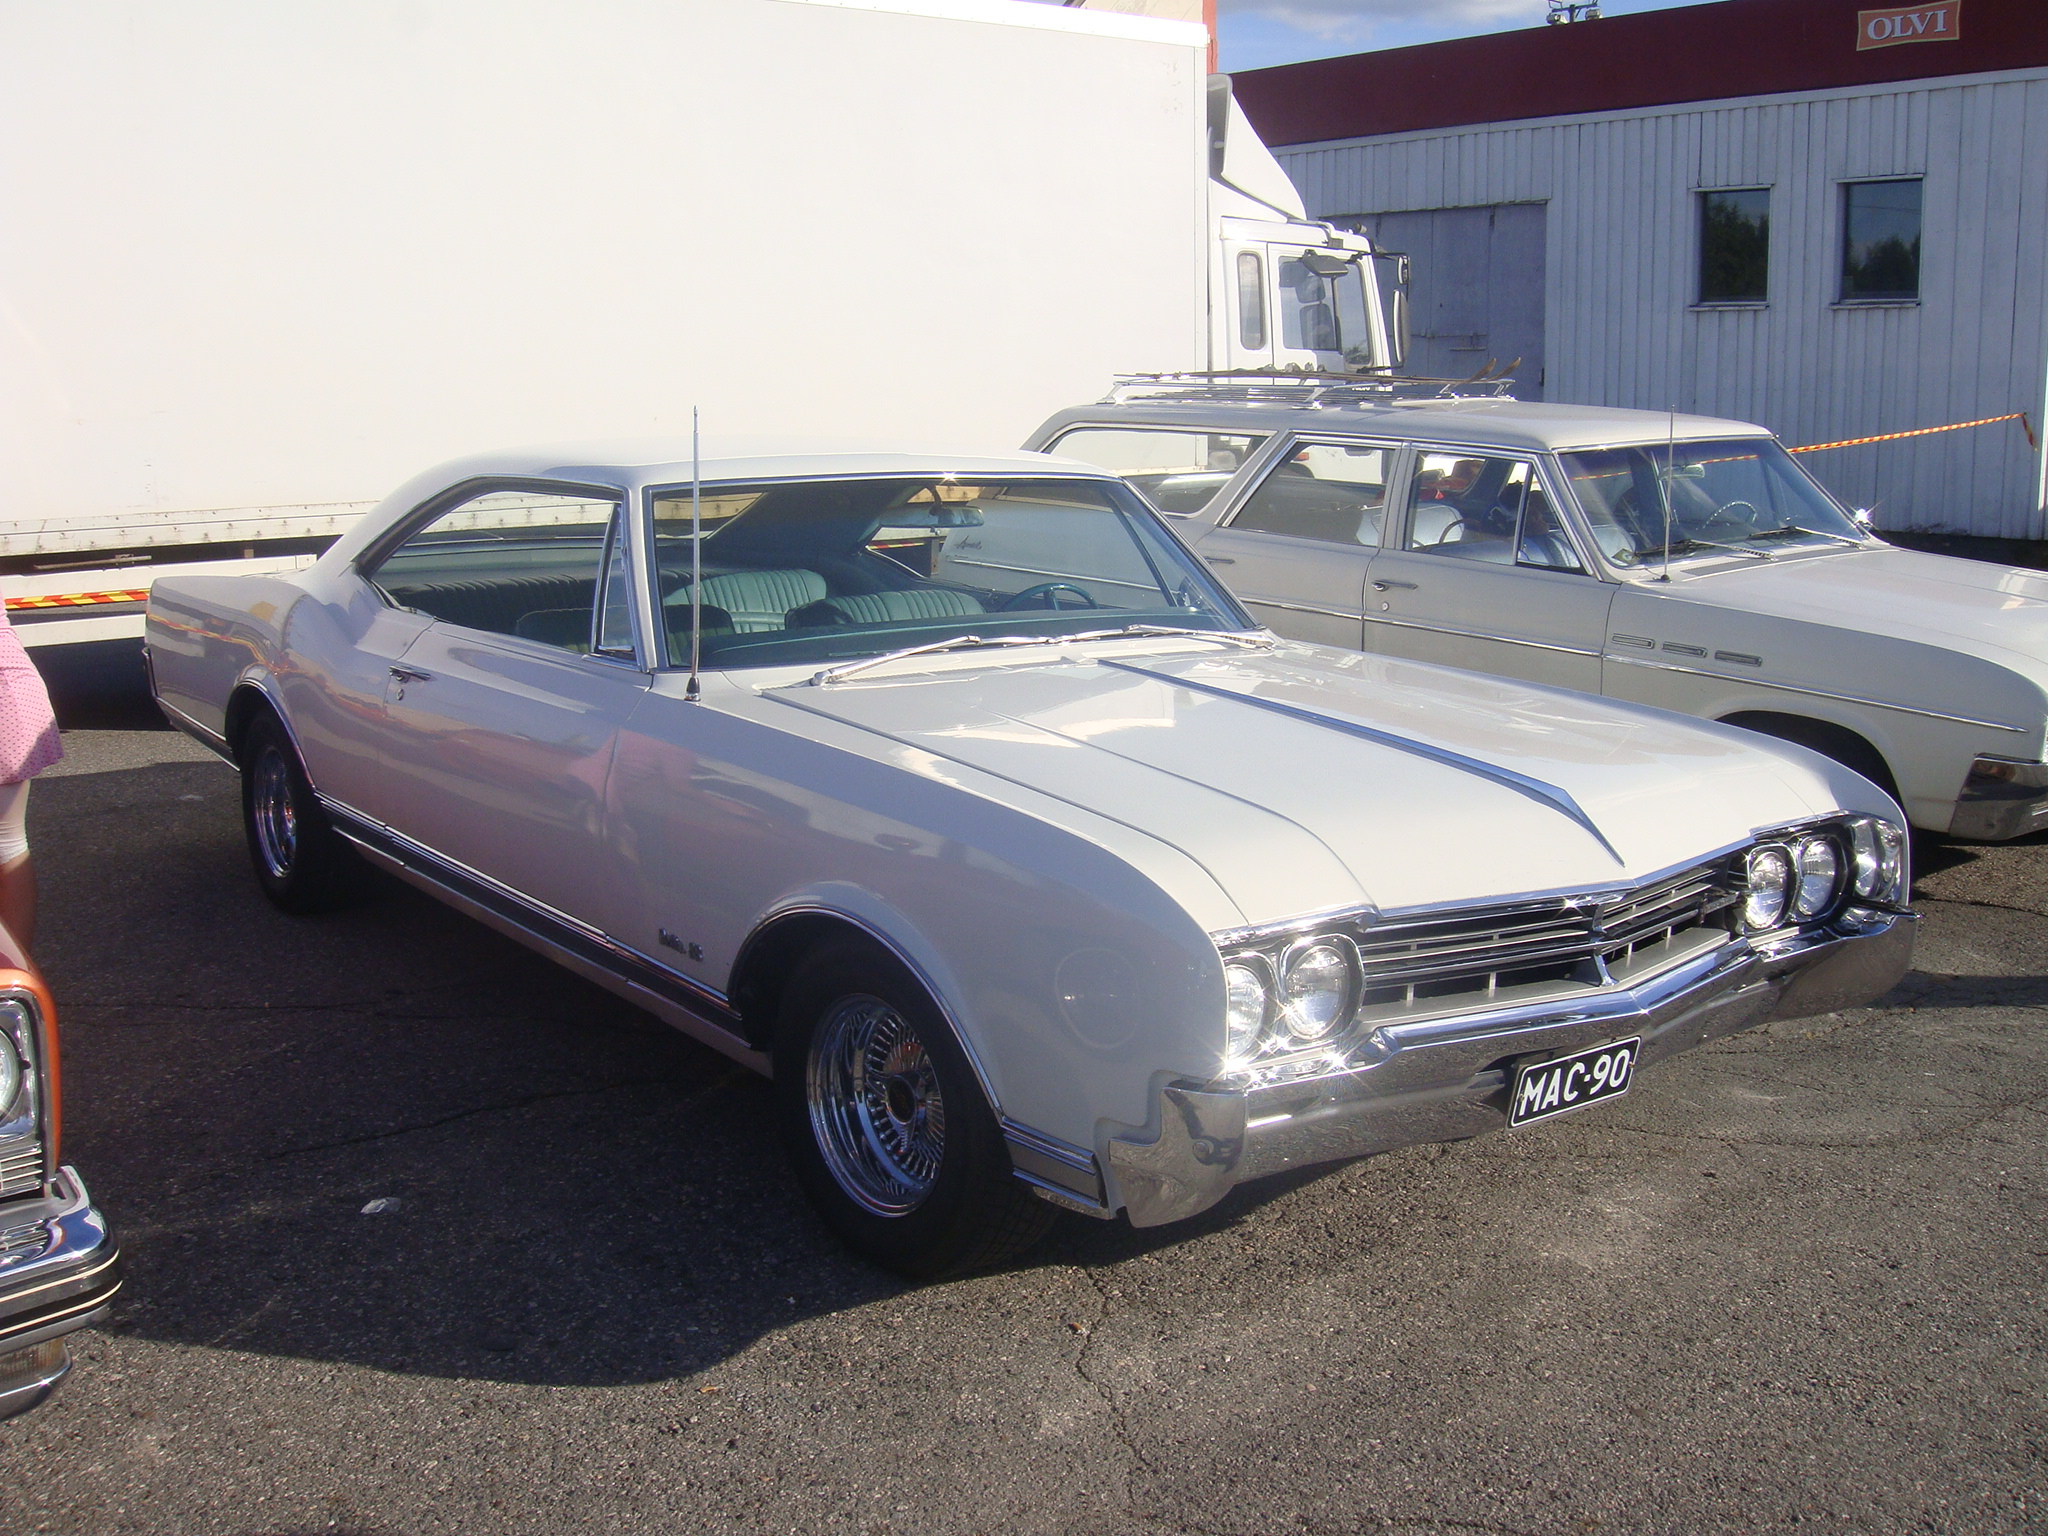 1966 Oldsmobile Delta 88 Holiday coupe<br>425cid+th400